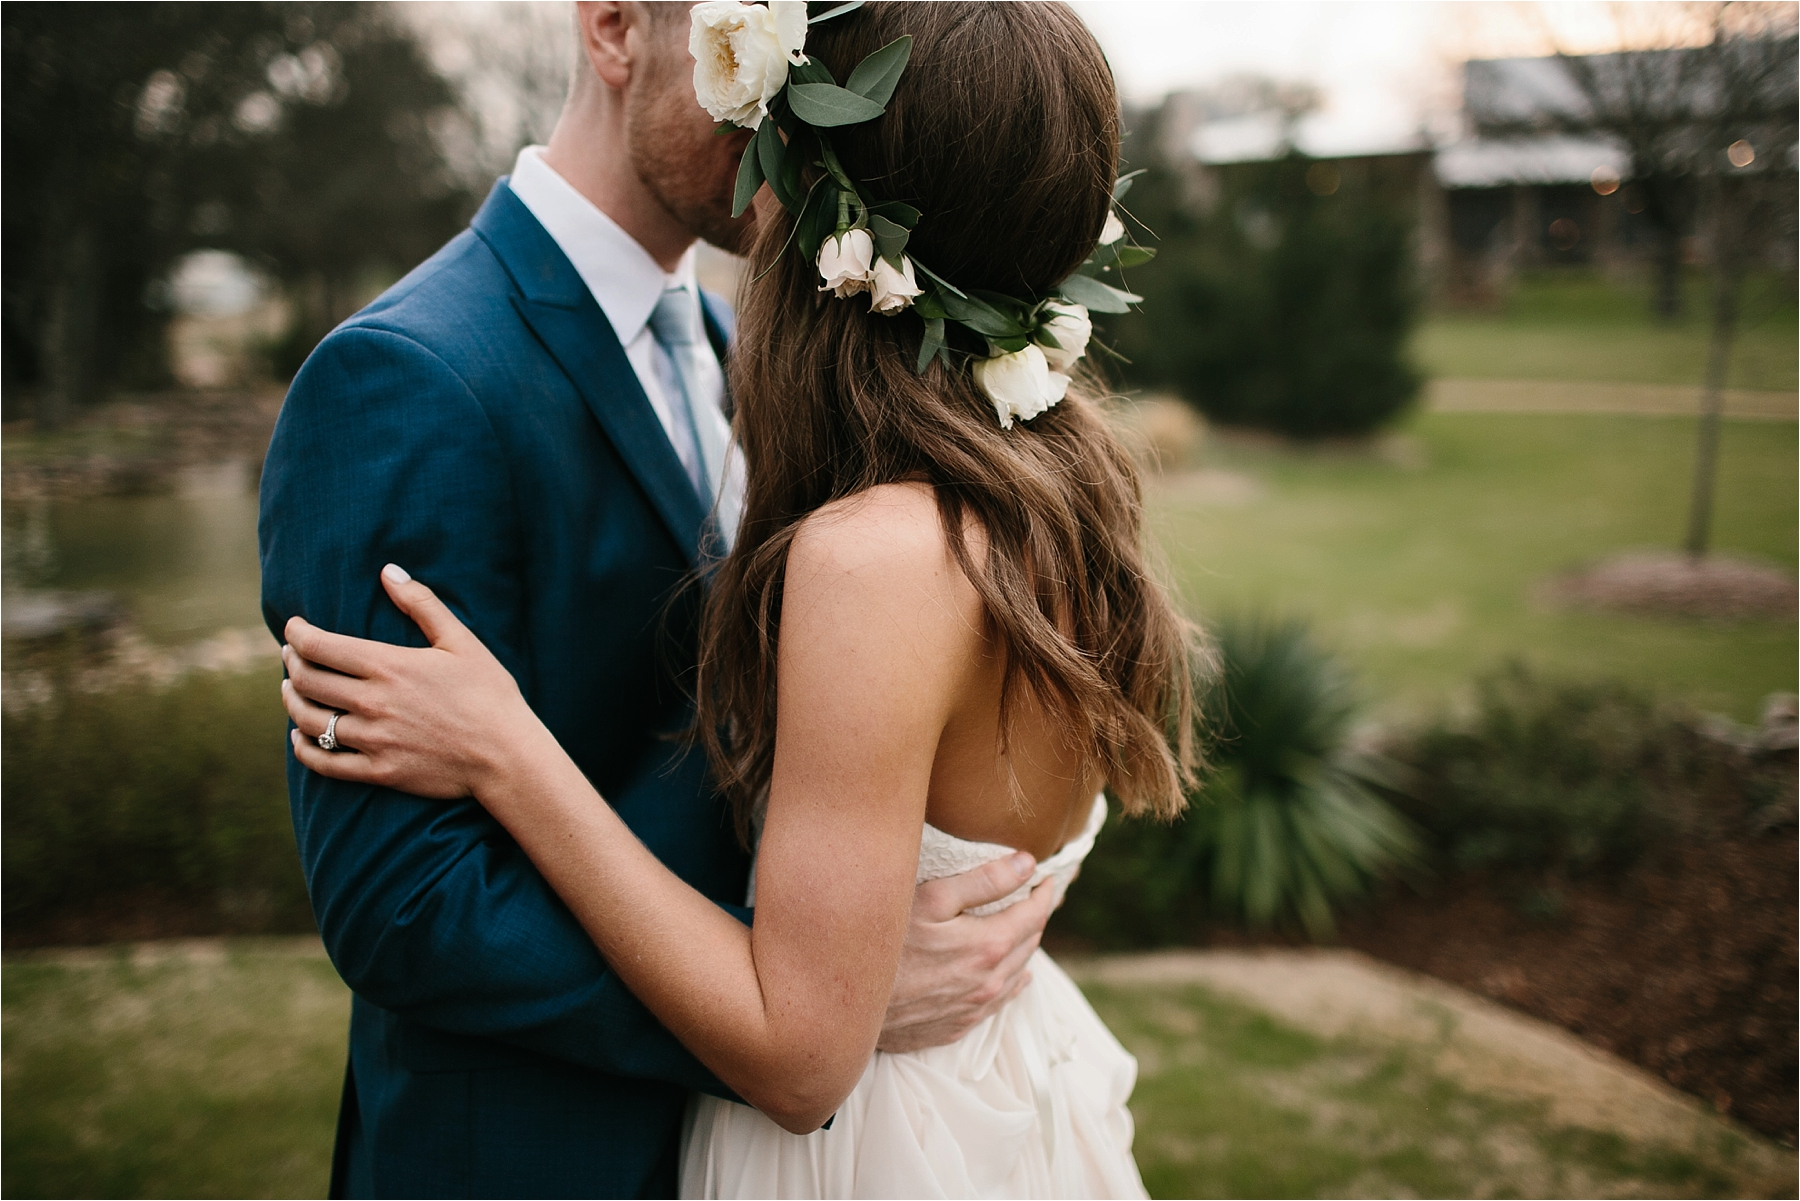 Lauren + Matt __ an intimate, emotional, blush pink, navy blue, and greenery toned wedding accents at the Brooks at Weatherford by North Texas Wedding Photographer Rachel Meagan Photography148